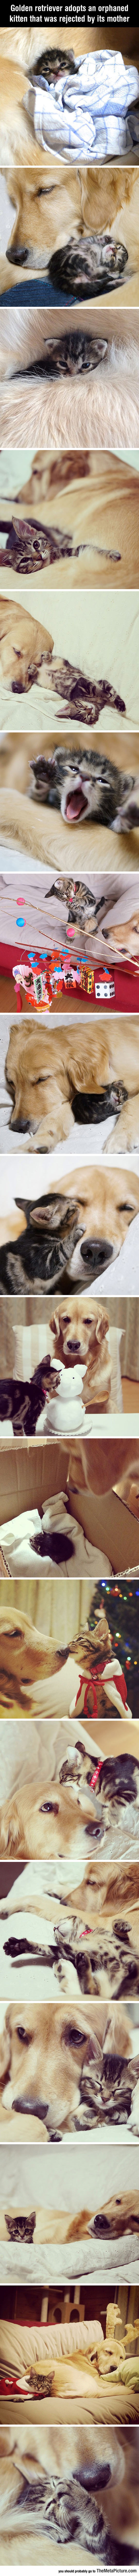 cool-kitten-orphan-dog-mother